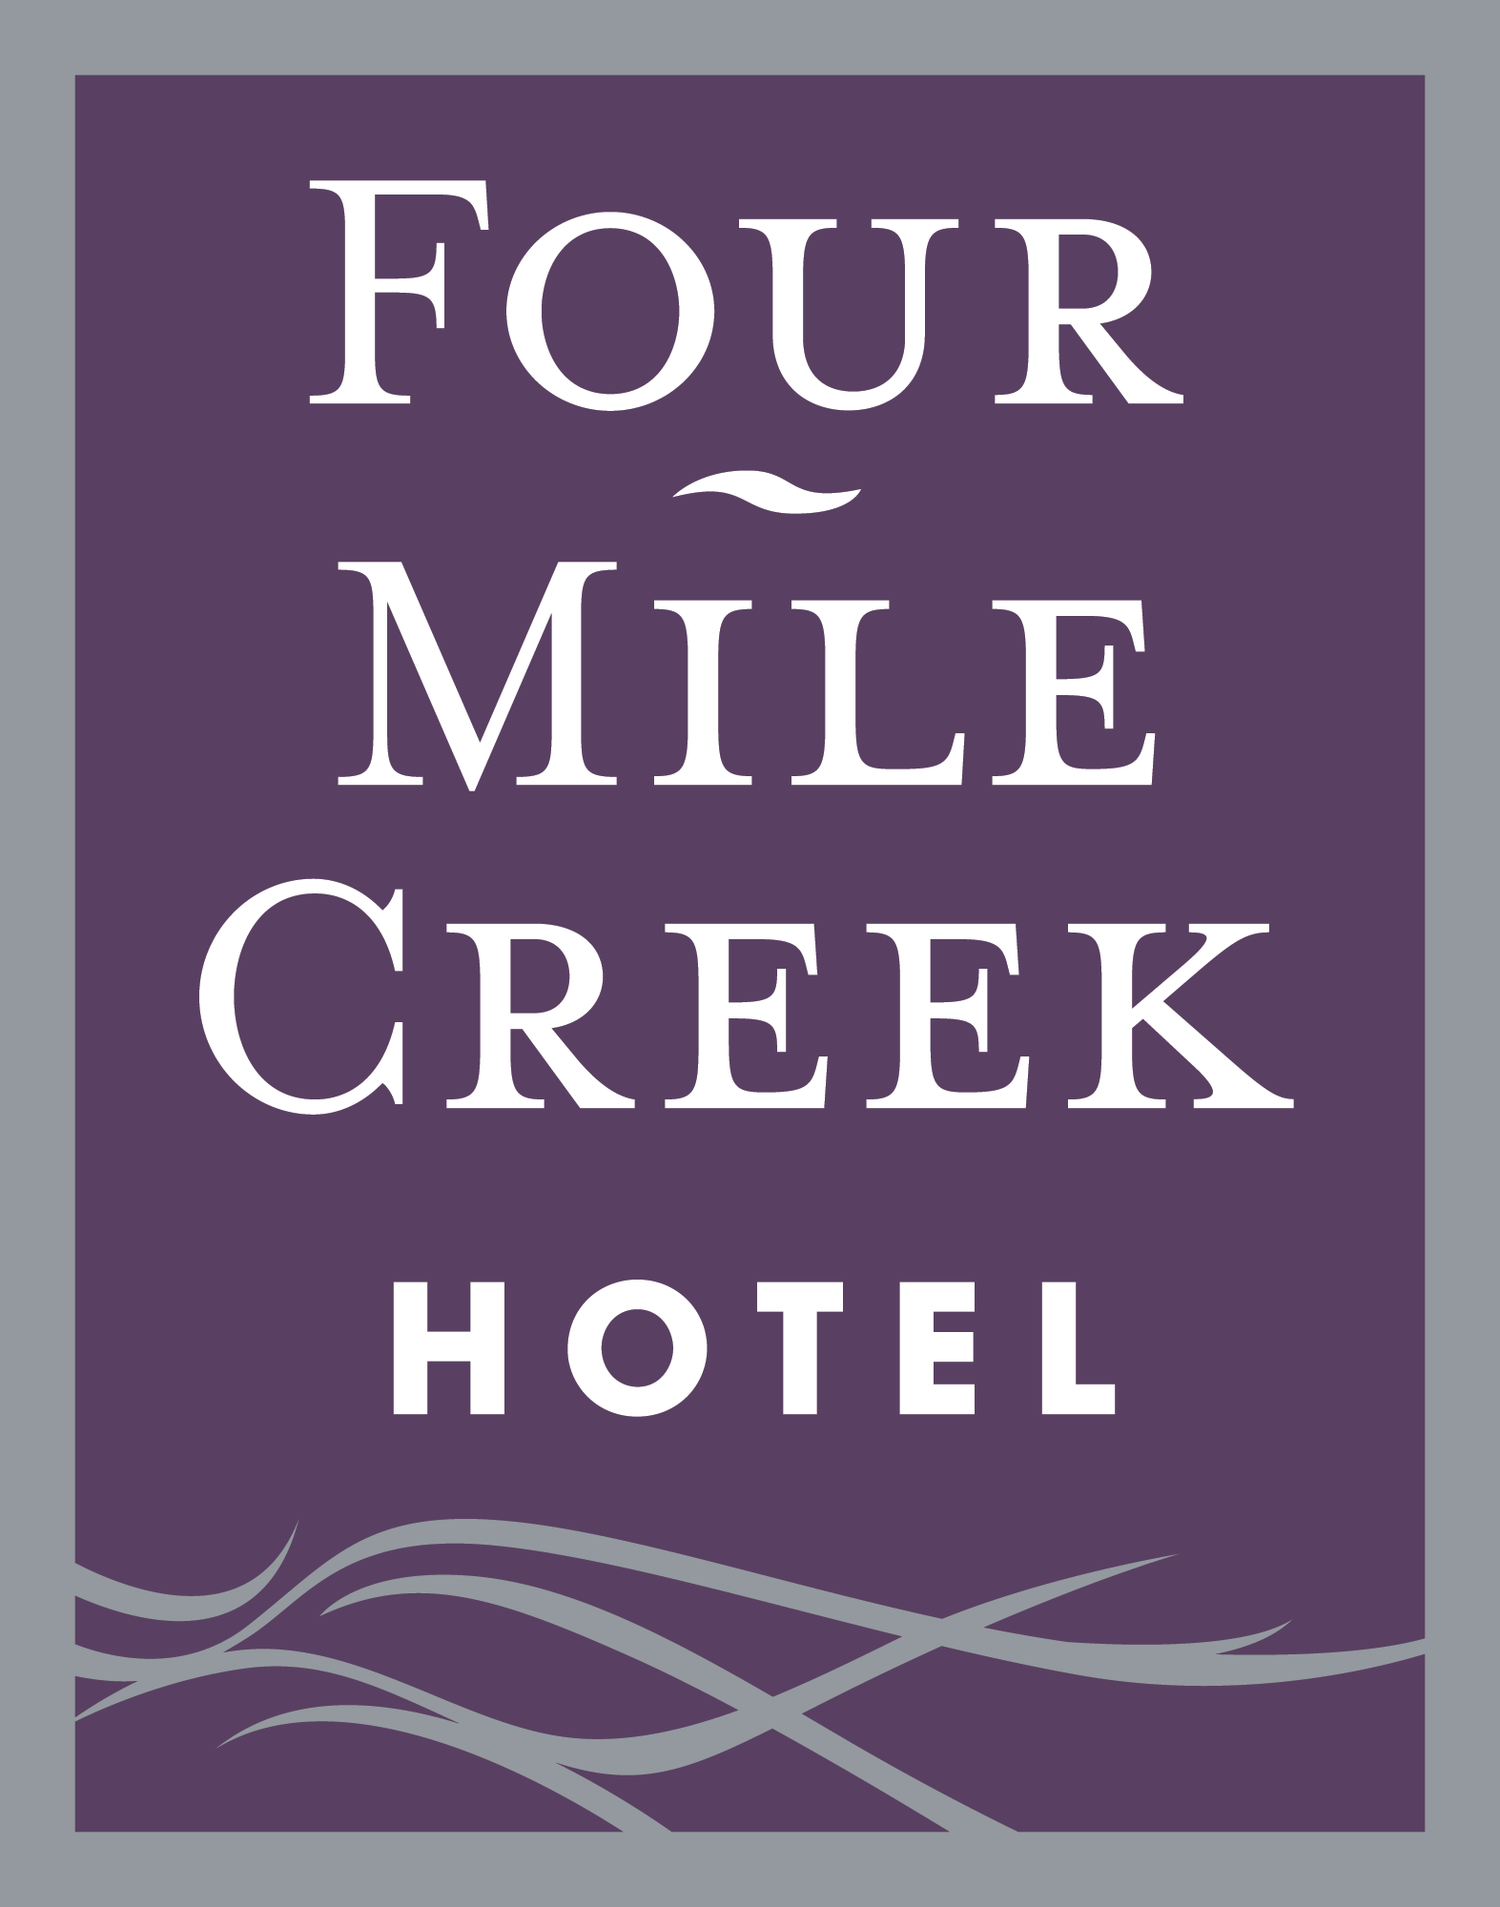 The Four Mile Creek Hotel, Strathpine, QLD